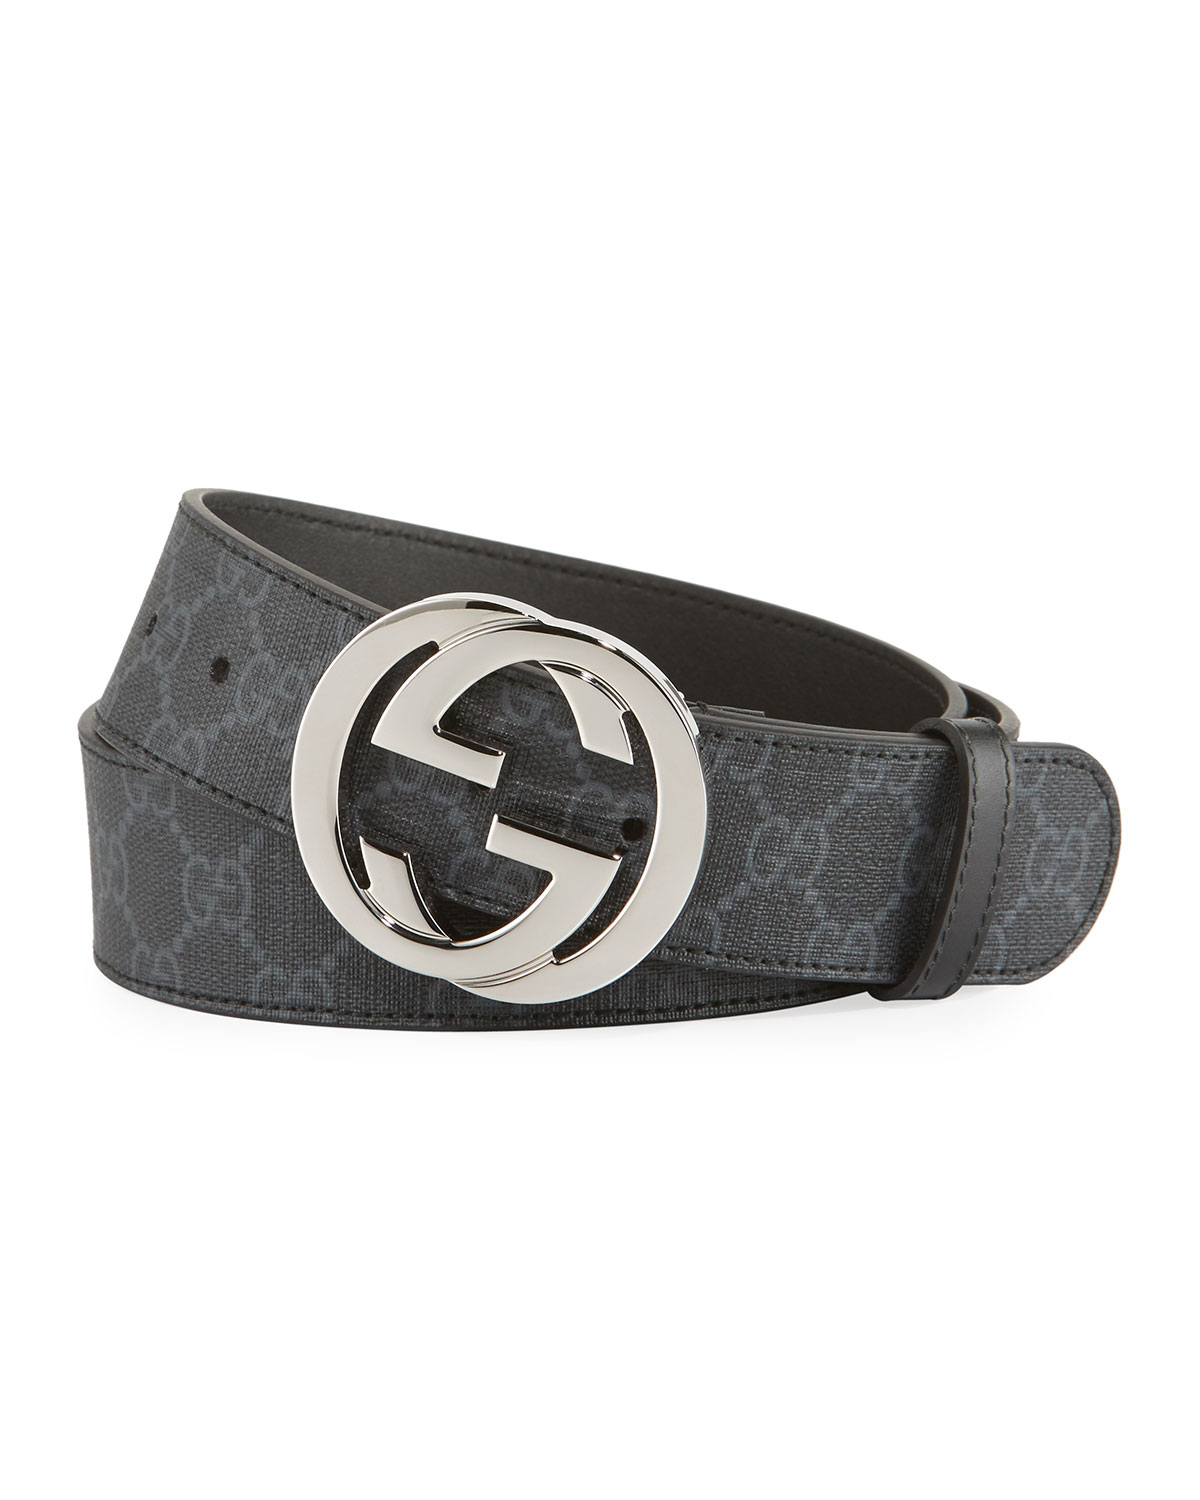 183b1ee08 Gucci GG Supreme Belt with G buckle and Matching Items & Matching ...